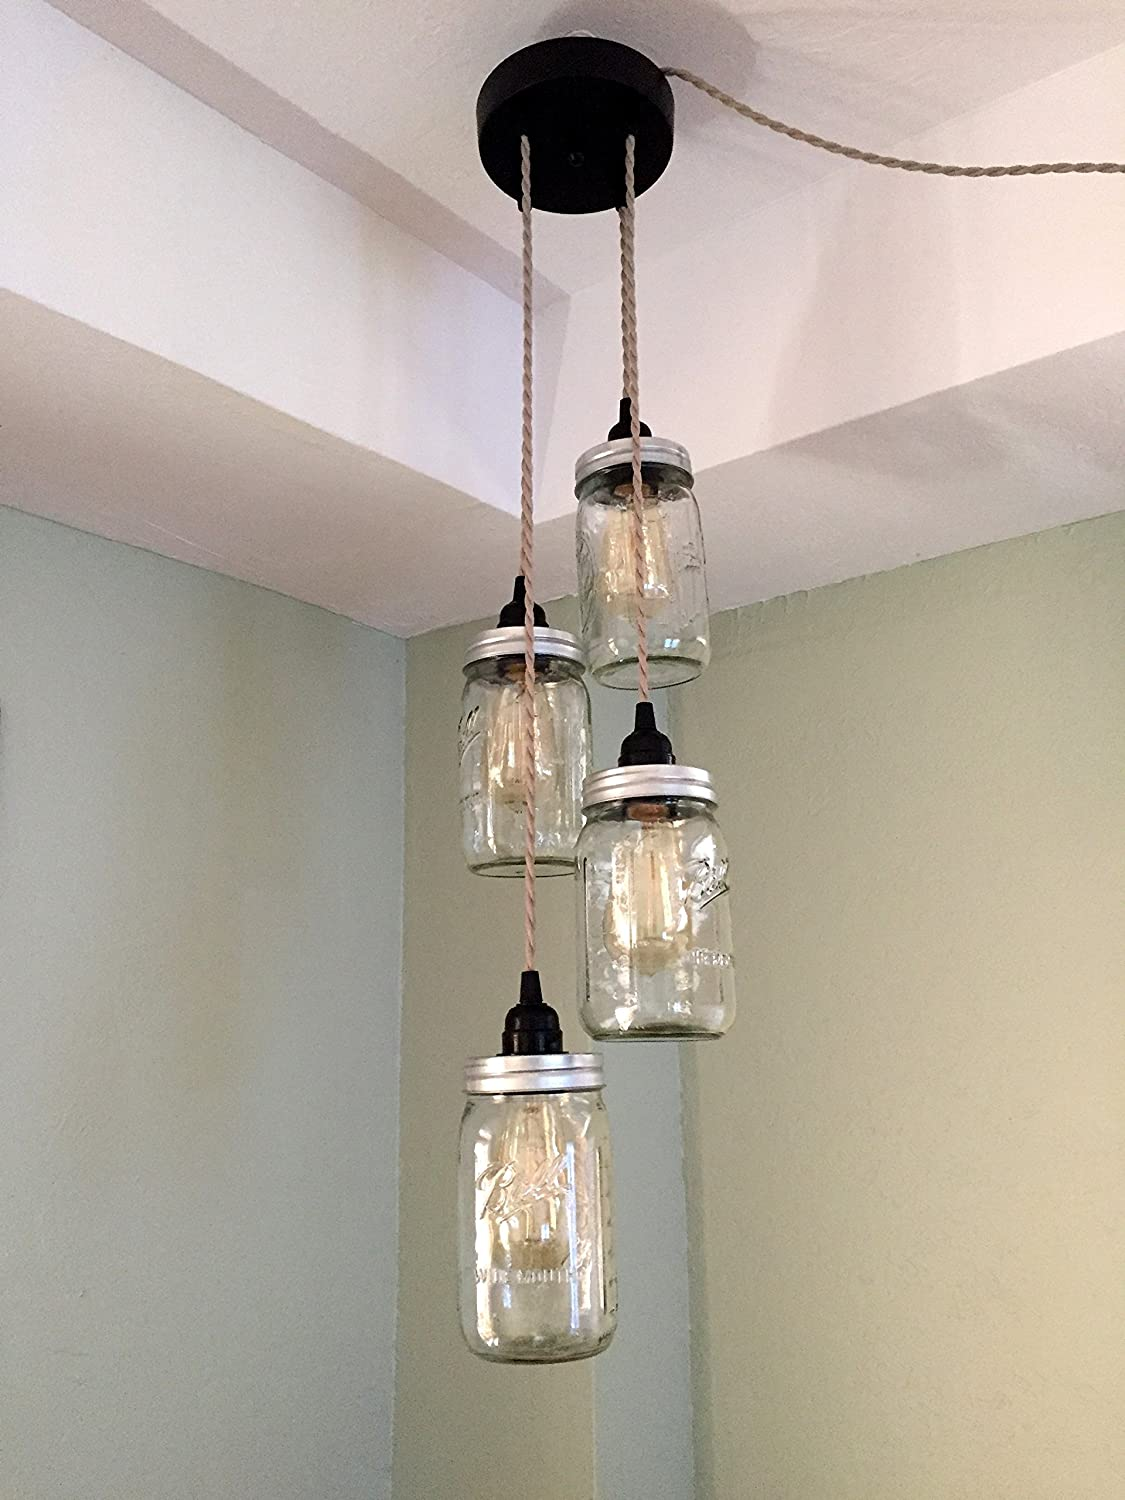 Mason Jar Chandelier Swag Light – NO Hard Wiring Just Hang it up and Plug it in Sand Cord